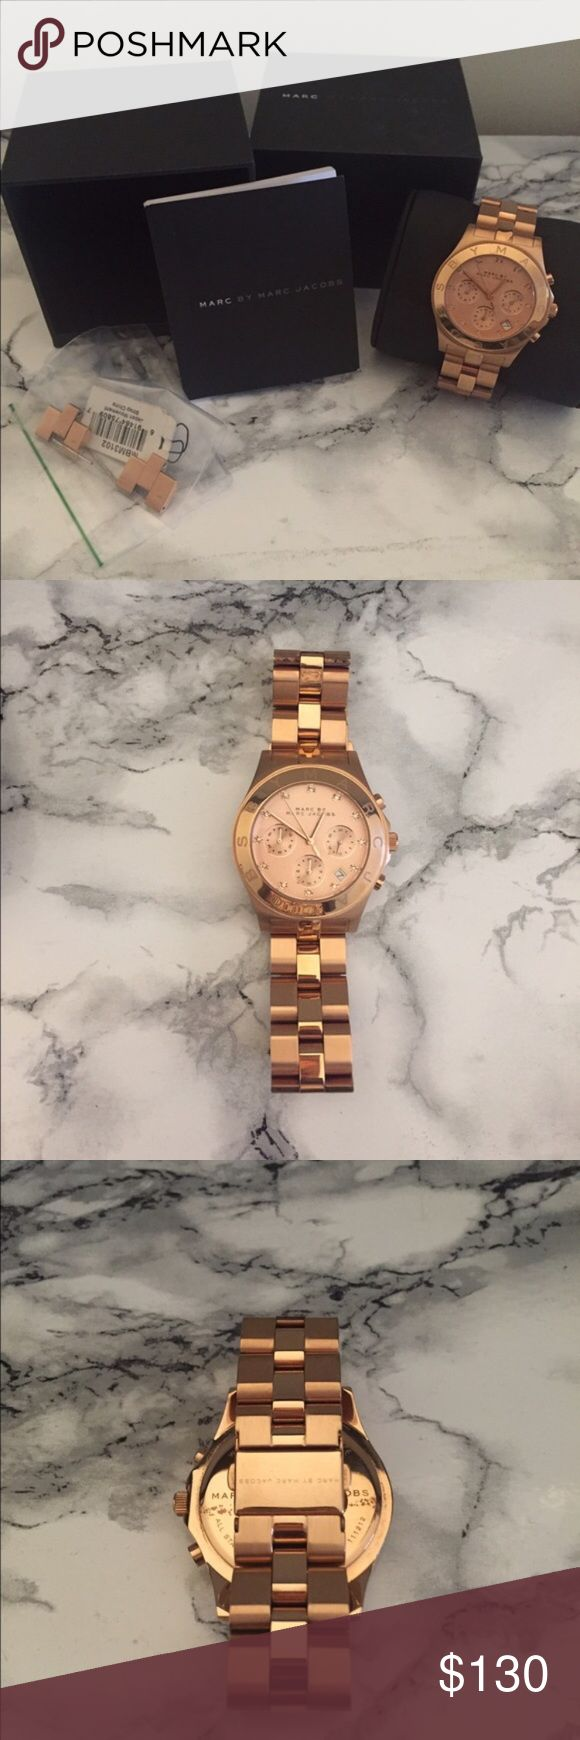 Marc Jacobs Watch Woman's Rose Gold, big face watch , excellent condition worn a few times, needs a new battery, comes with box and information booklet, extra links, NO TRADES Marc by Marc Jacobs Jewelry